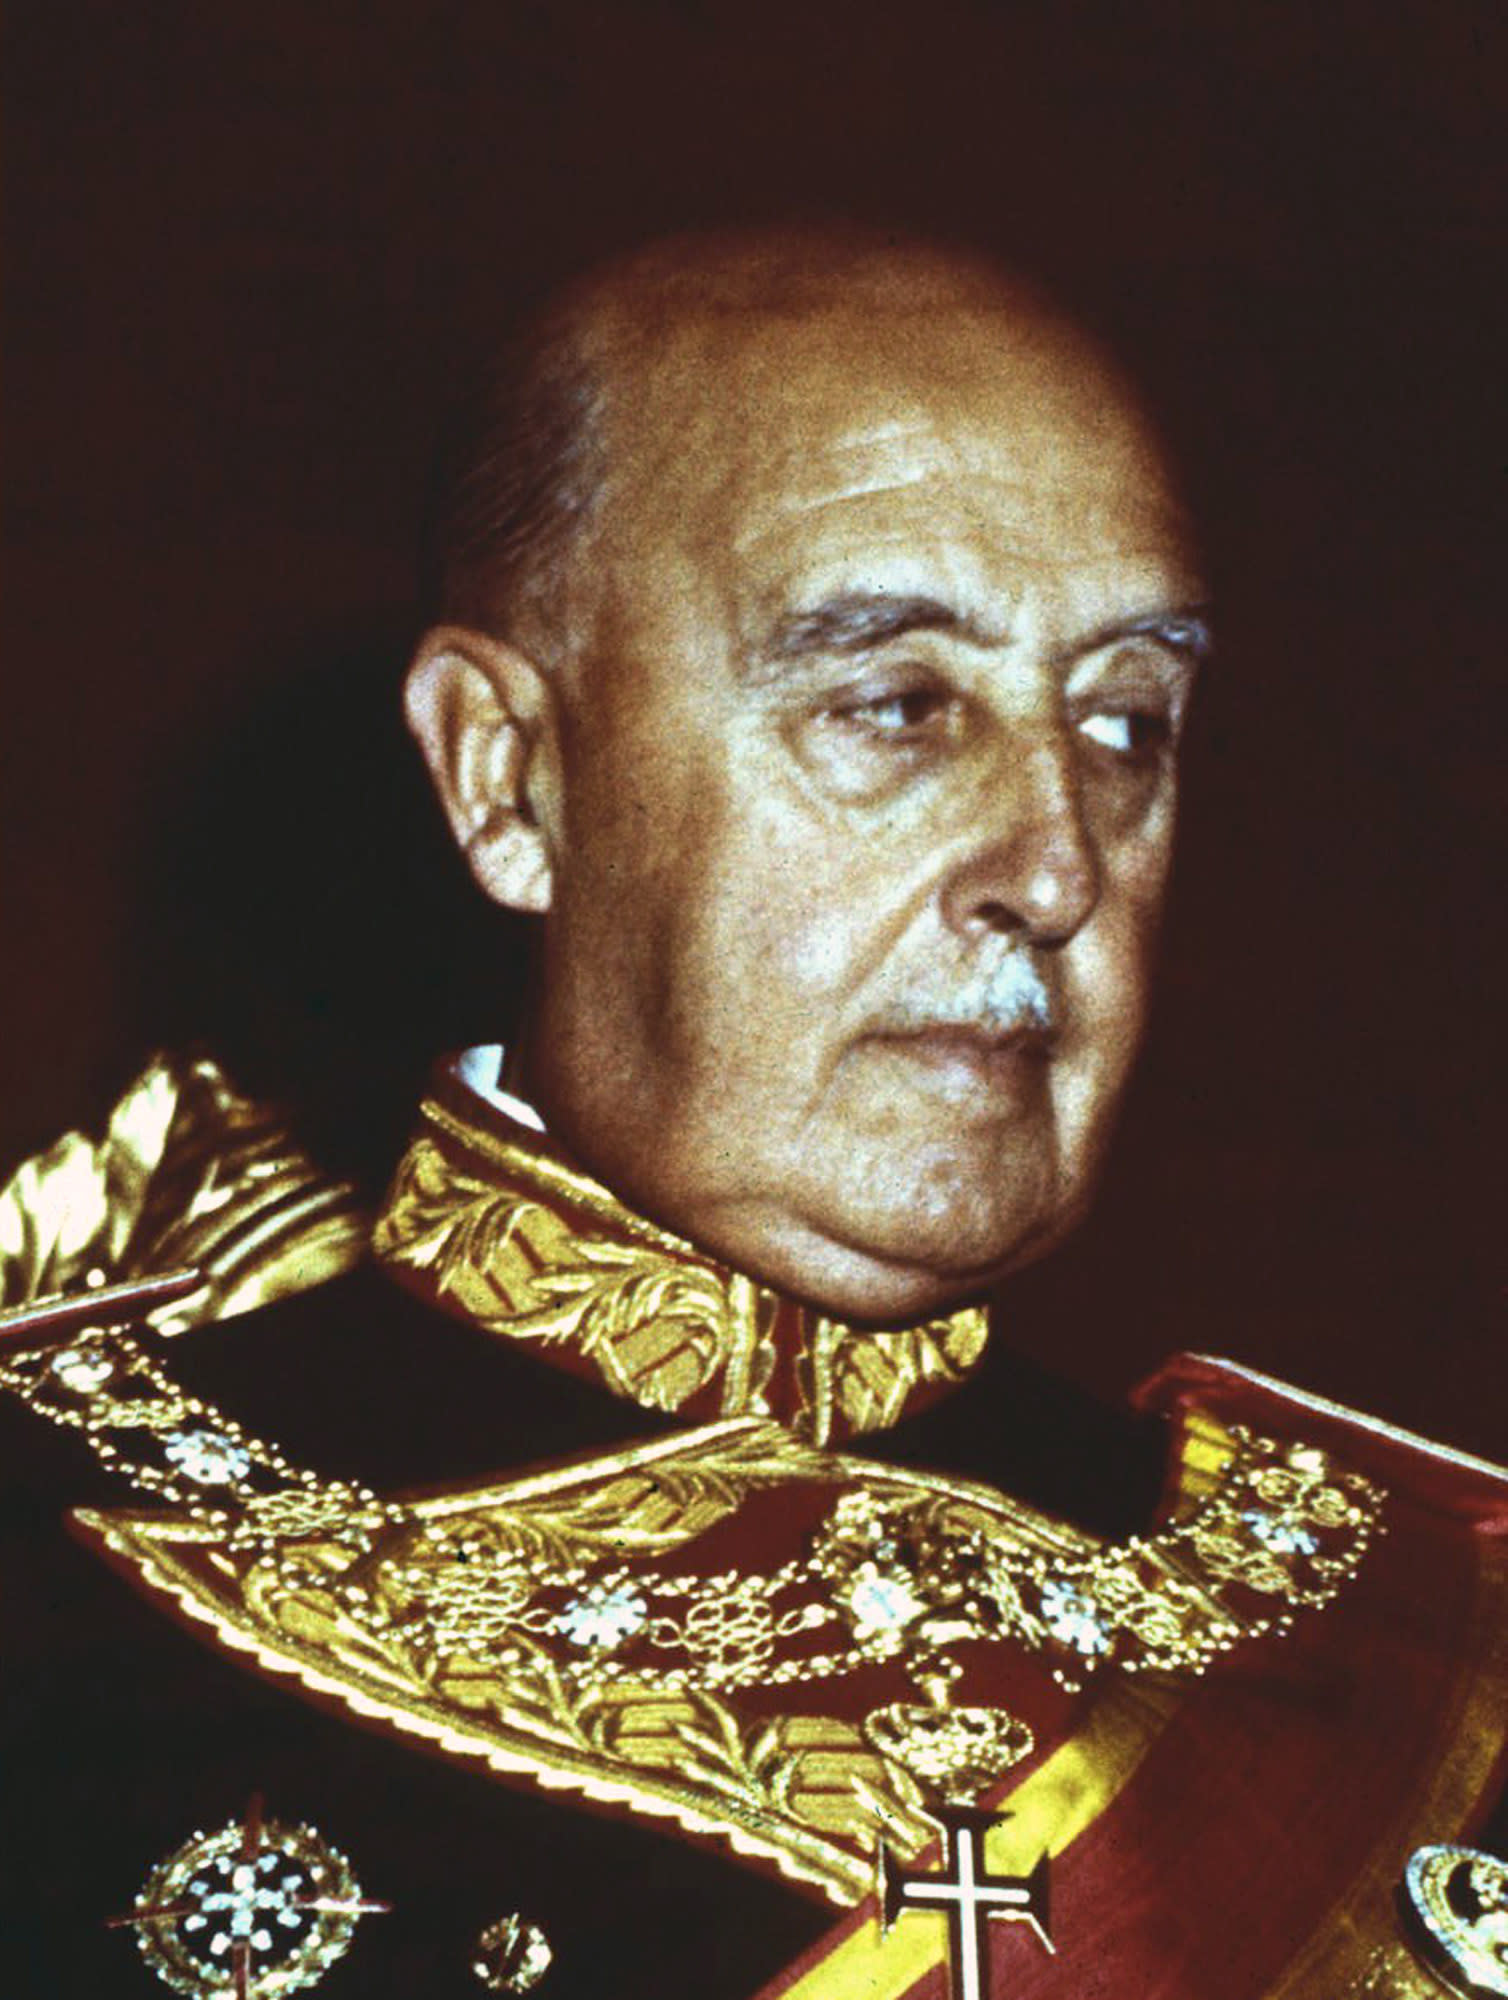 FILE - Undated file photo of former Spanish dictator Francisco Franco. Spain says it has exhumed the remains of Spanish dictator Gen. Francisco Franco from his grandiose mausoleum outside Madrid so he can be reburied in a small family crypt north of the capital. (AP Photo, file)